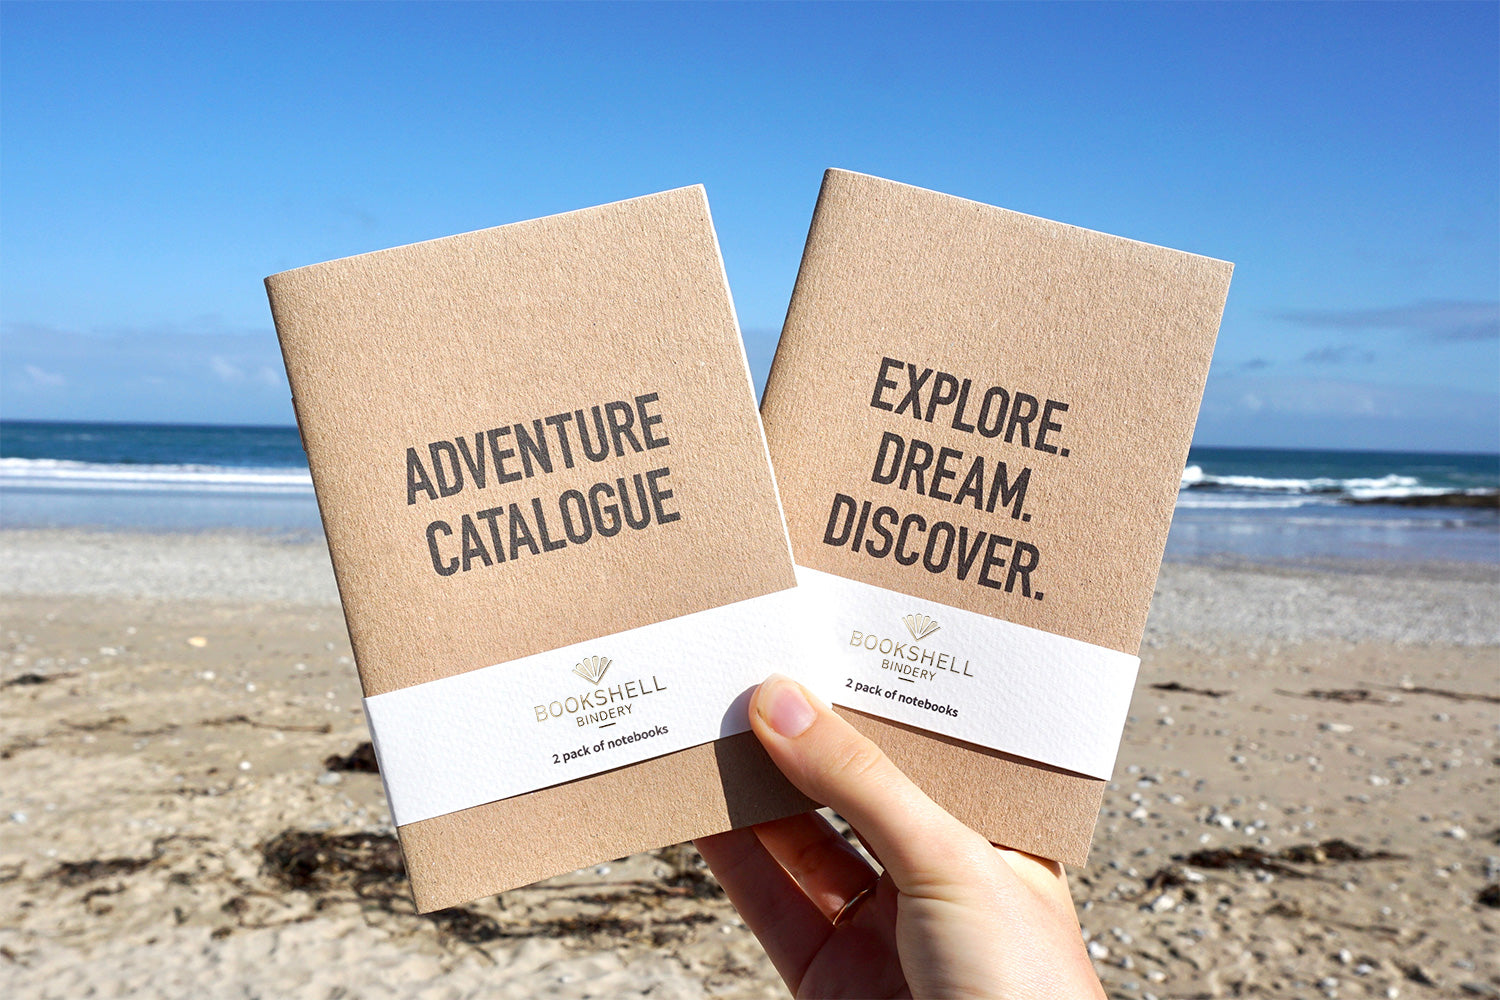 Travel notebook from Bookshell, Explore Dream Discover and Adventure Catalogue